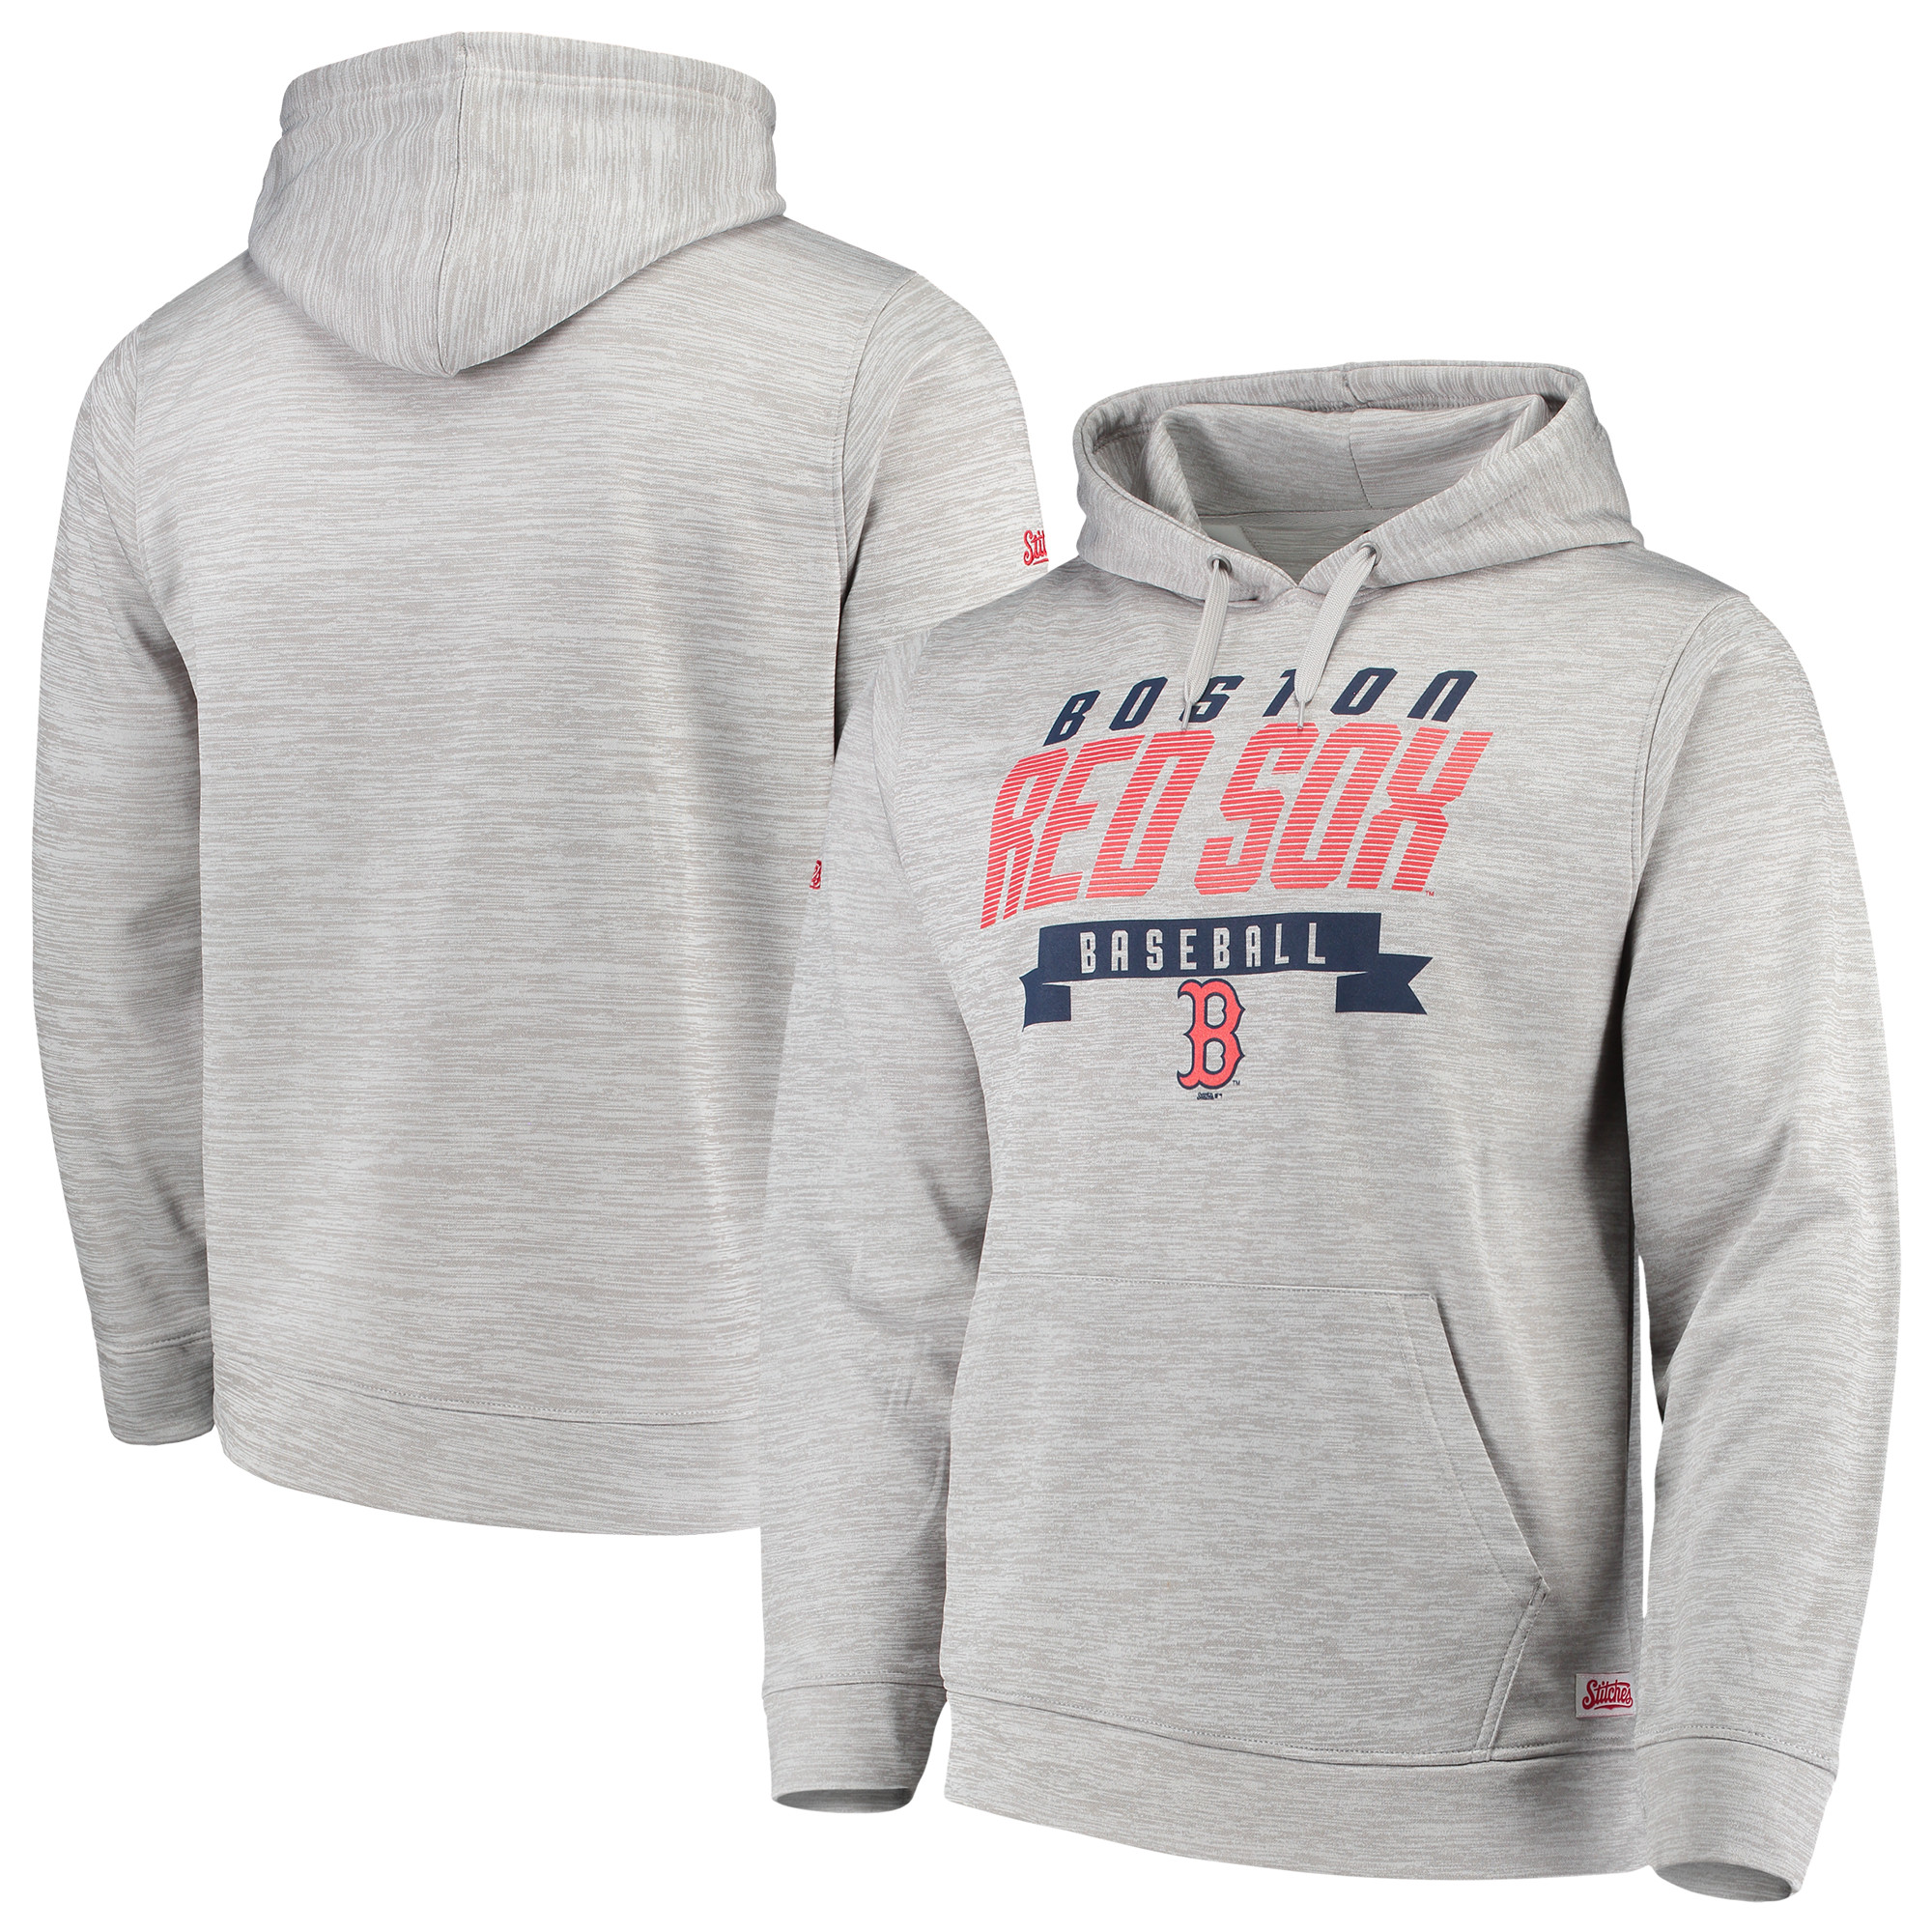 Boston Red Sox Stitches Poly Pullover Hoodie - Heathered Gray